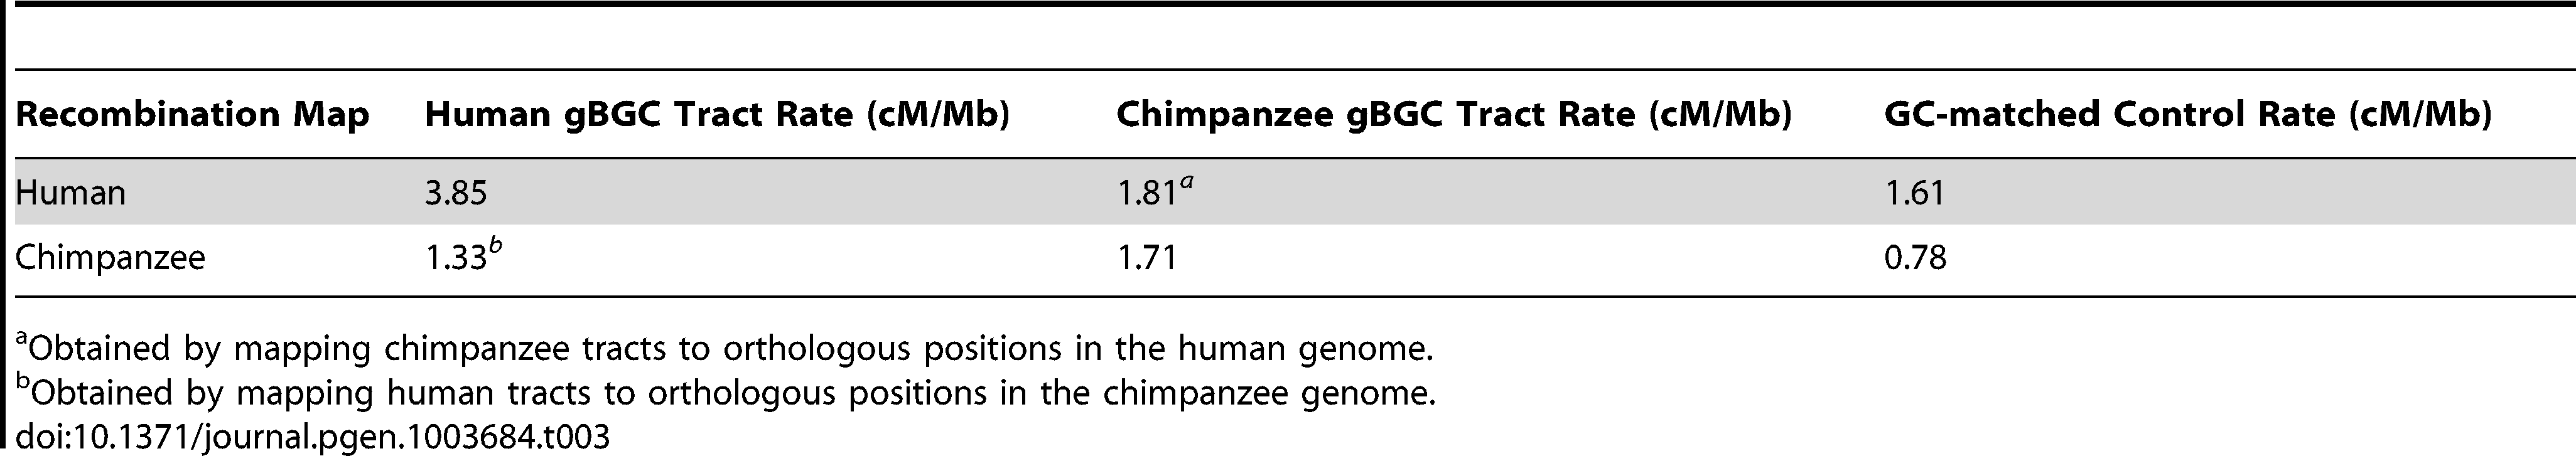 Recombination rates in gBGC tracts.